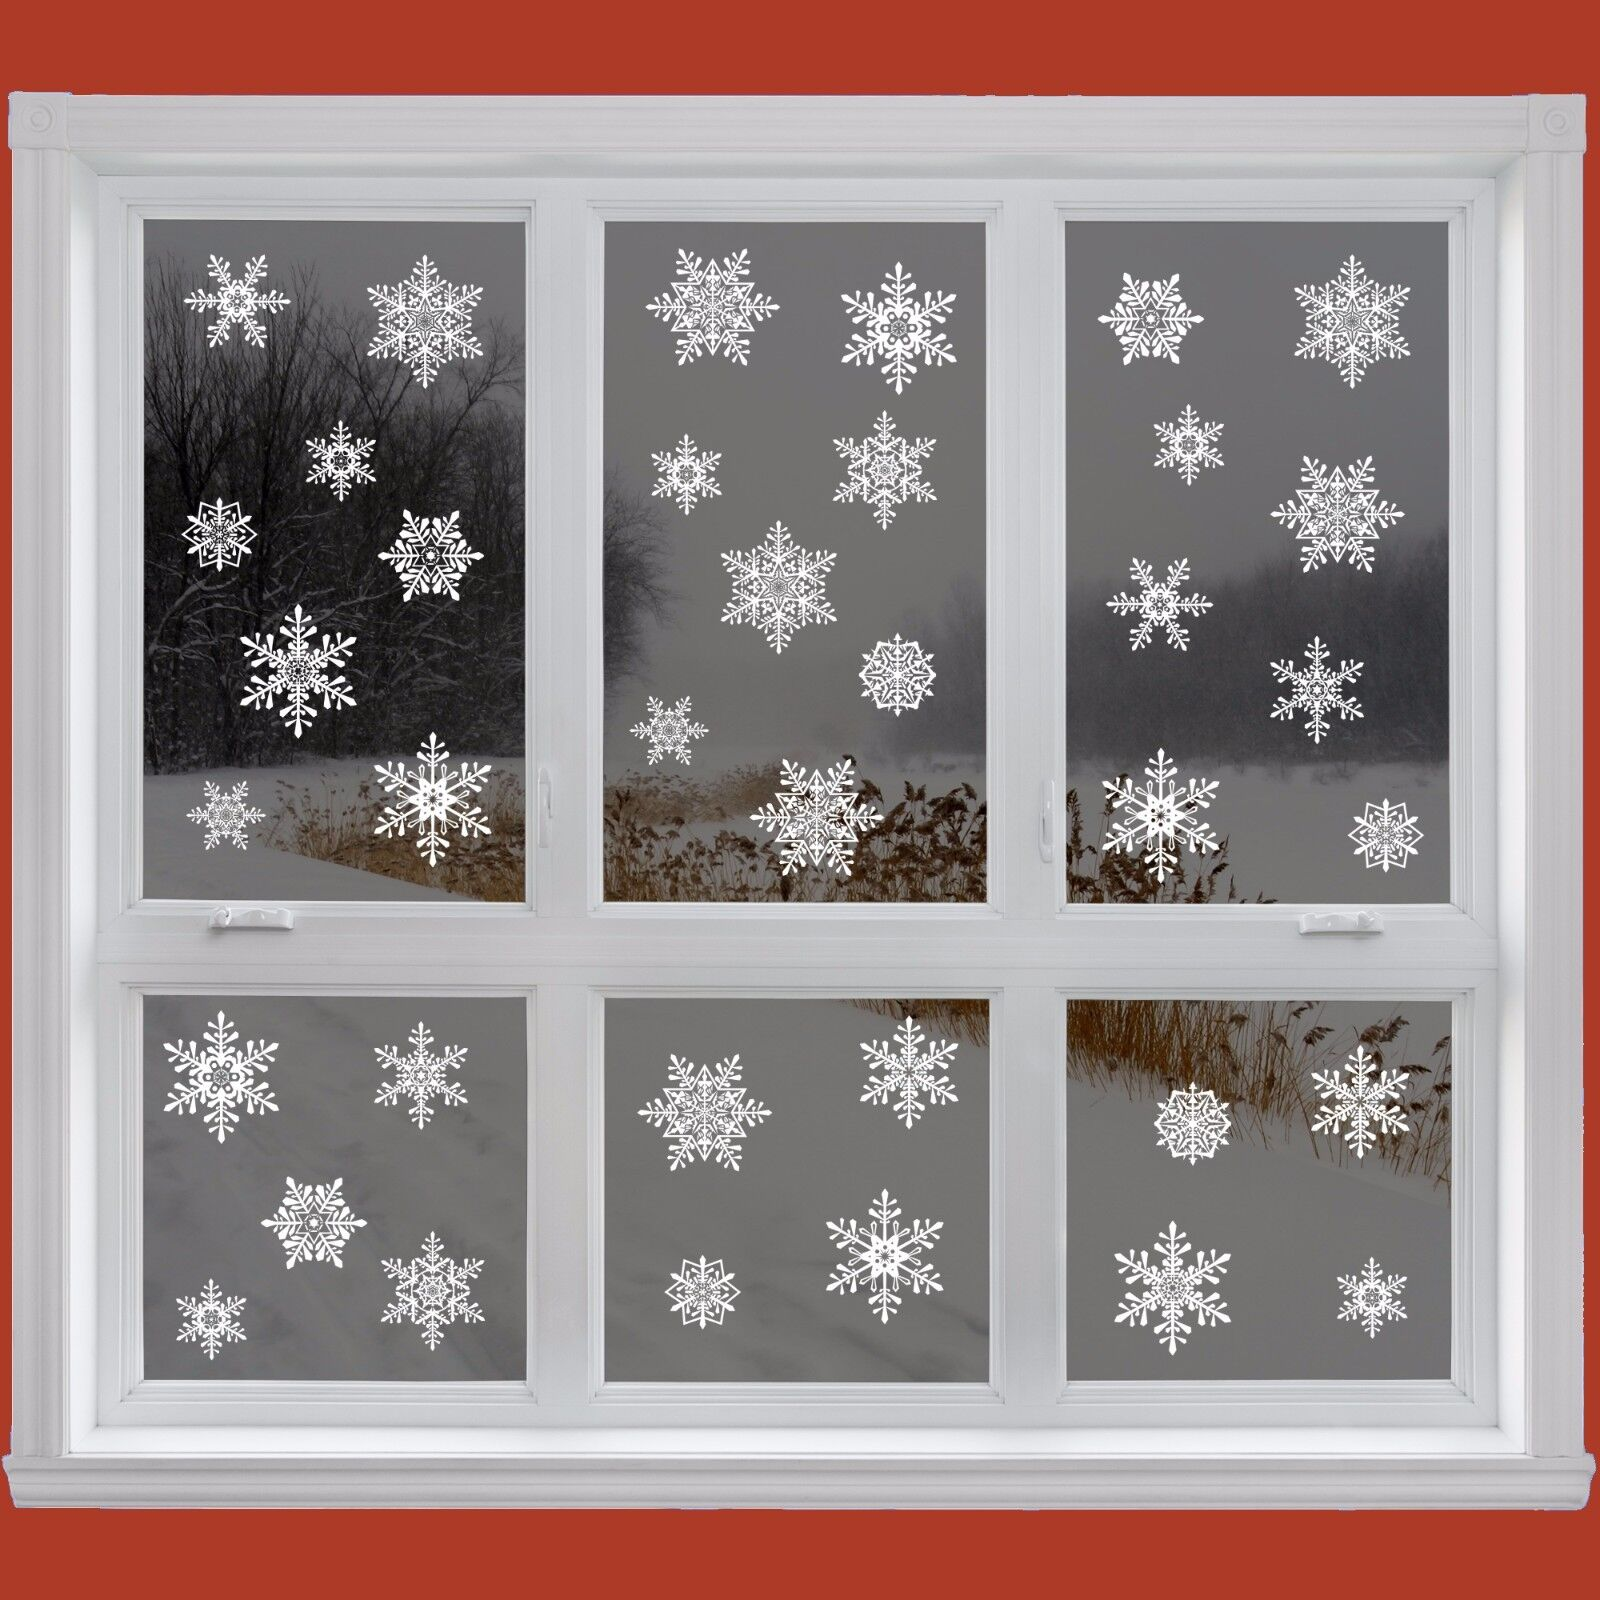 Articlings Elegant Snowflake Christmas Decor Window Clings 42 Pieces For Sale Online Ebay